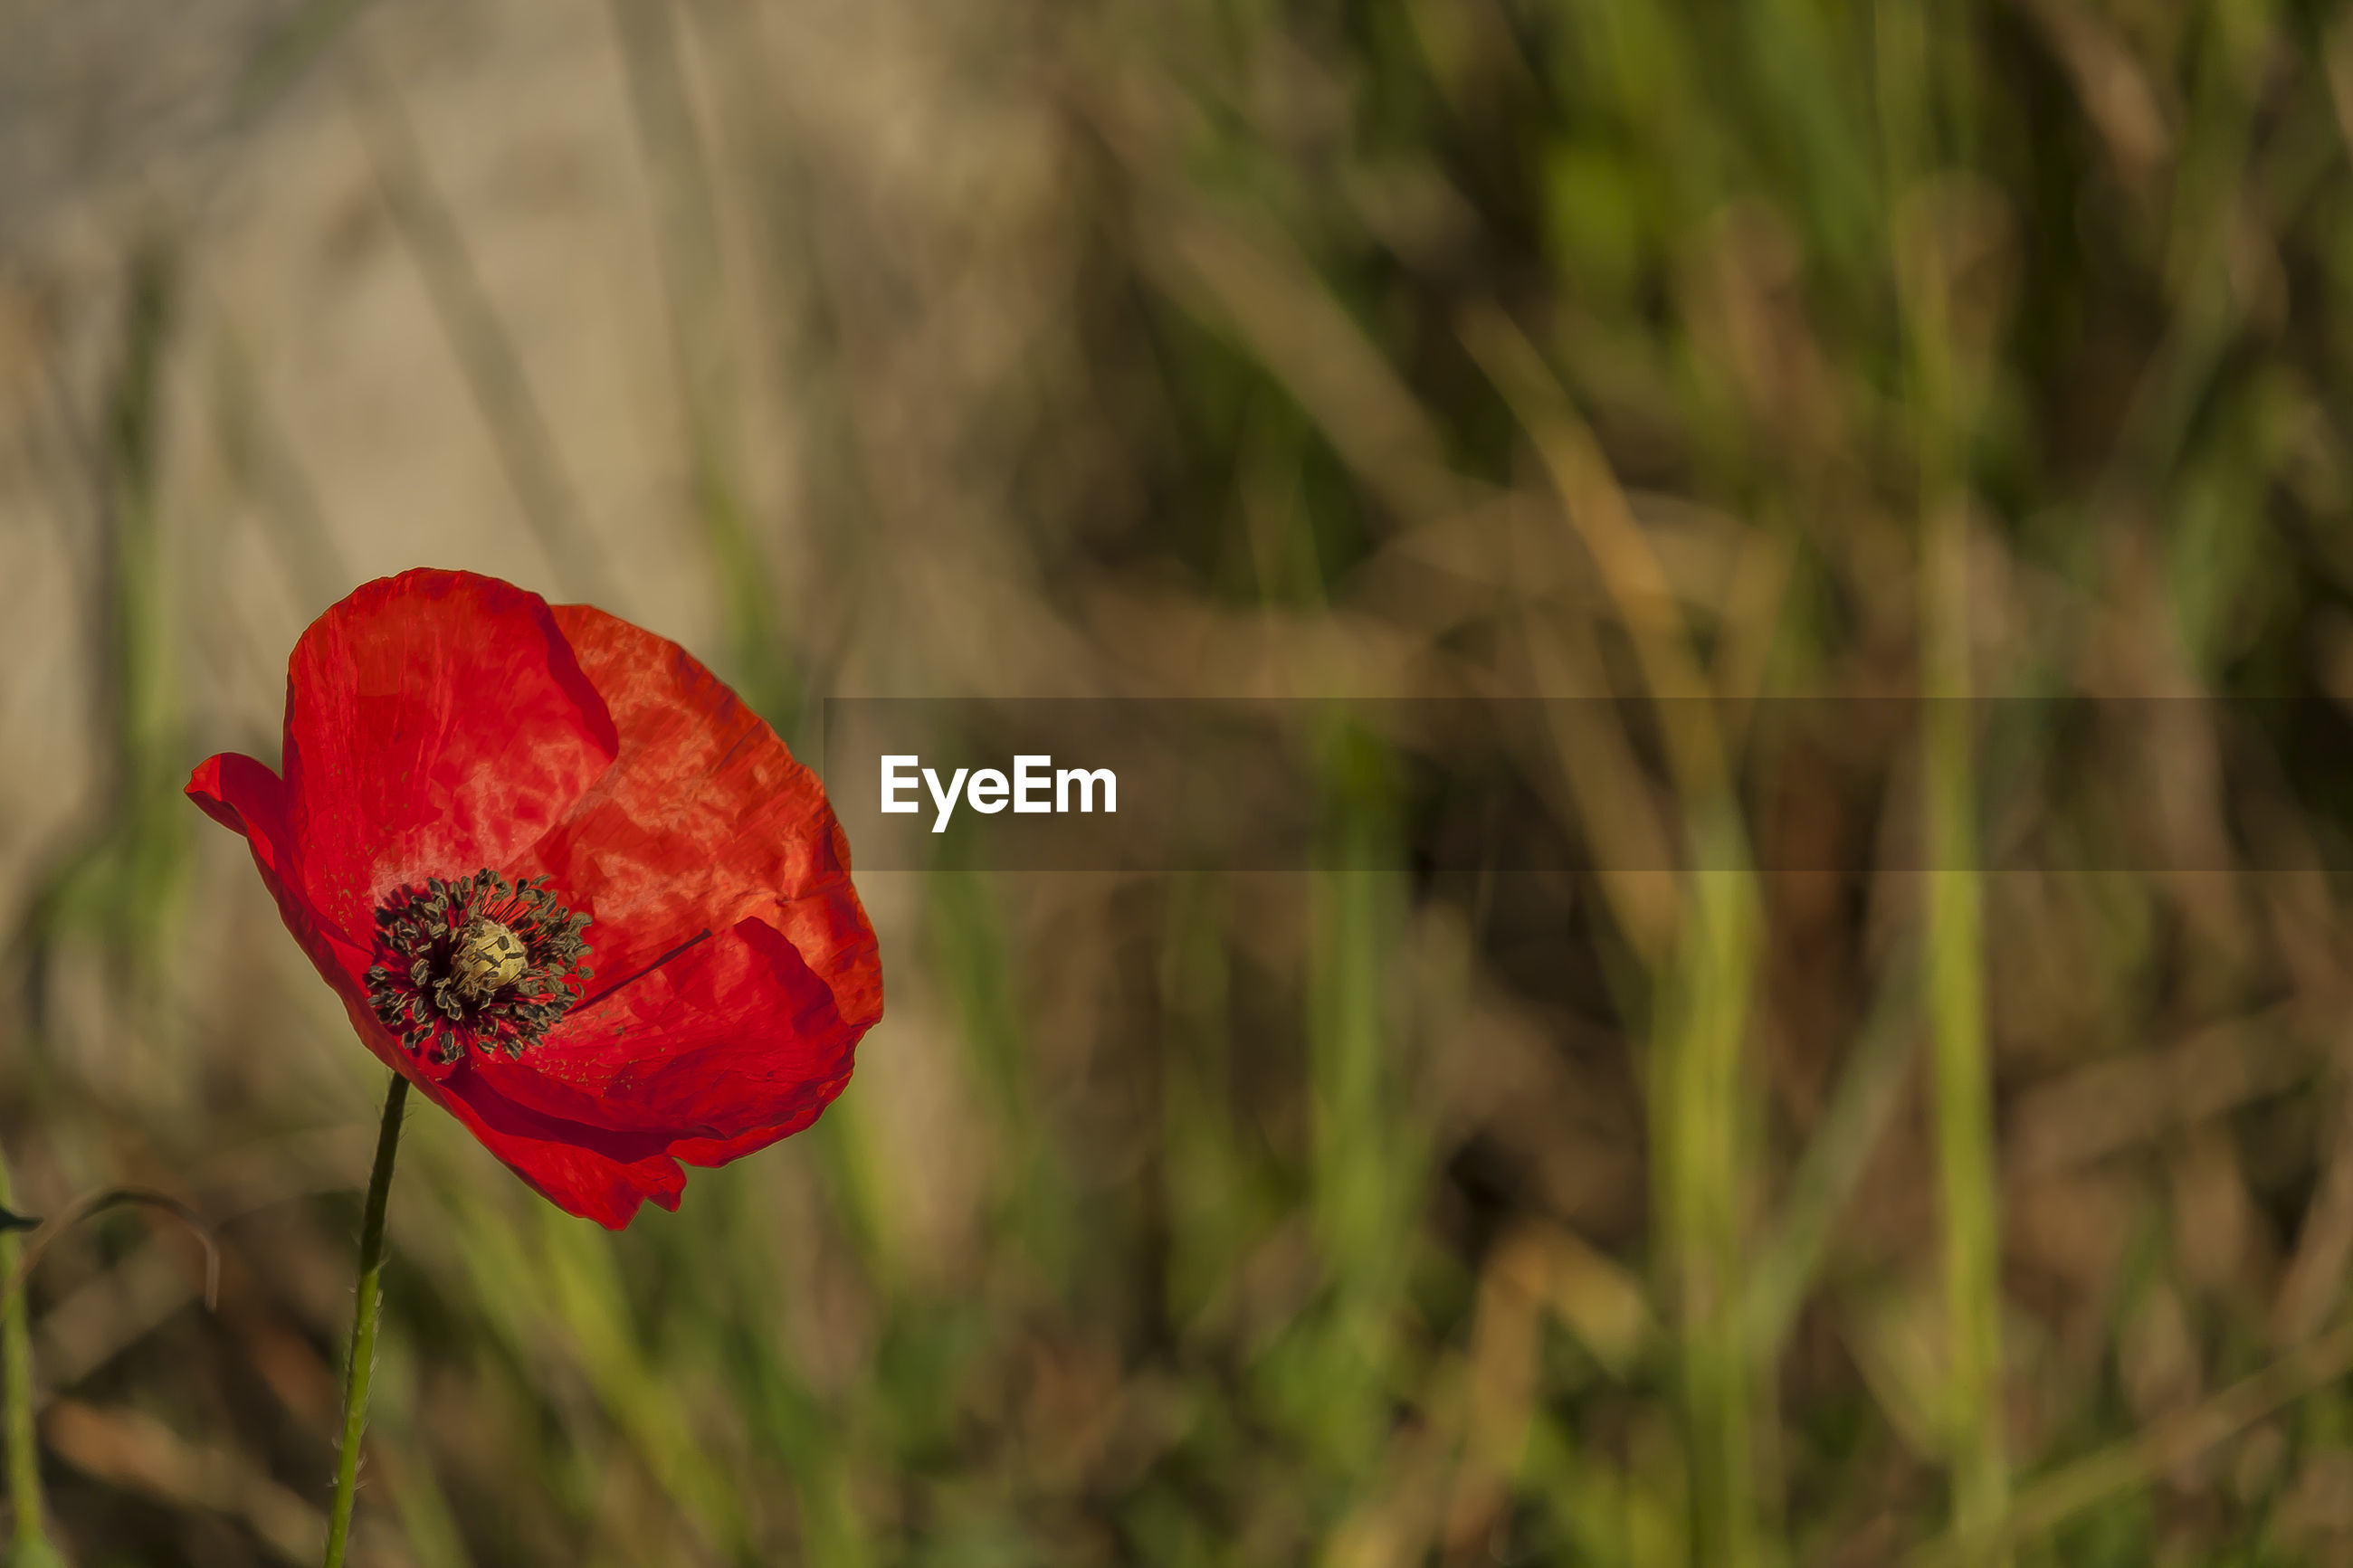 CLOSE-UP OF RED POPPY FLOWER ON LAND